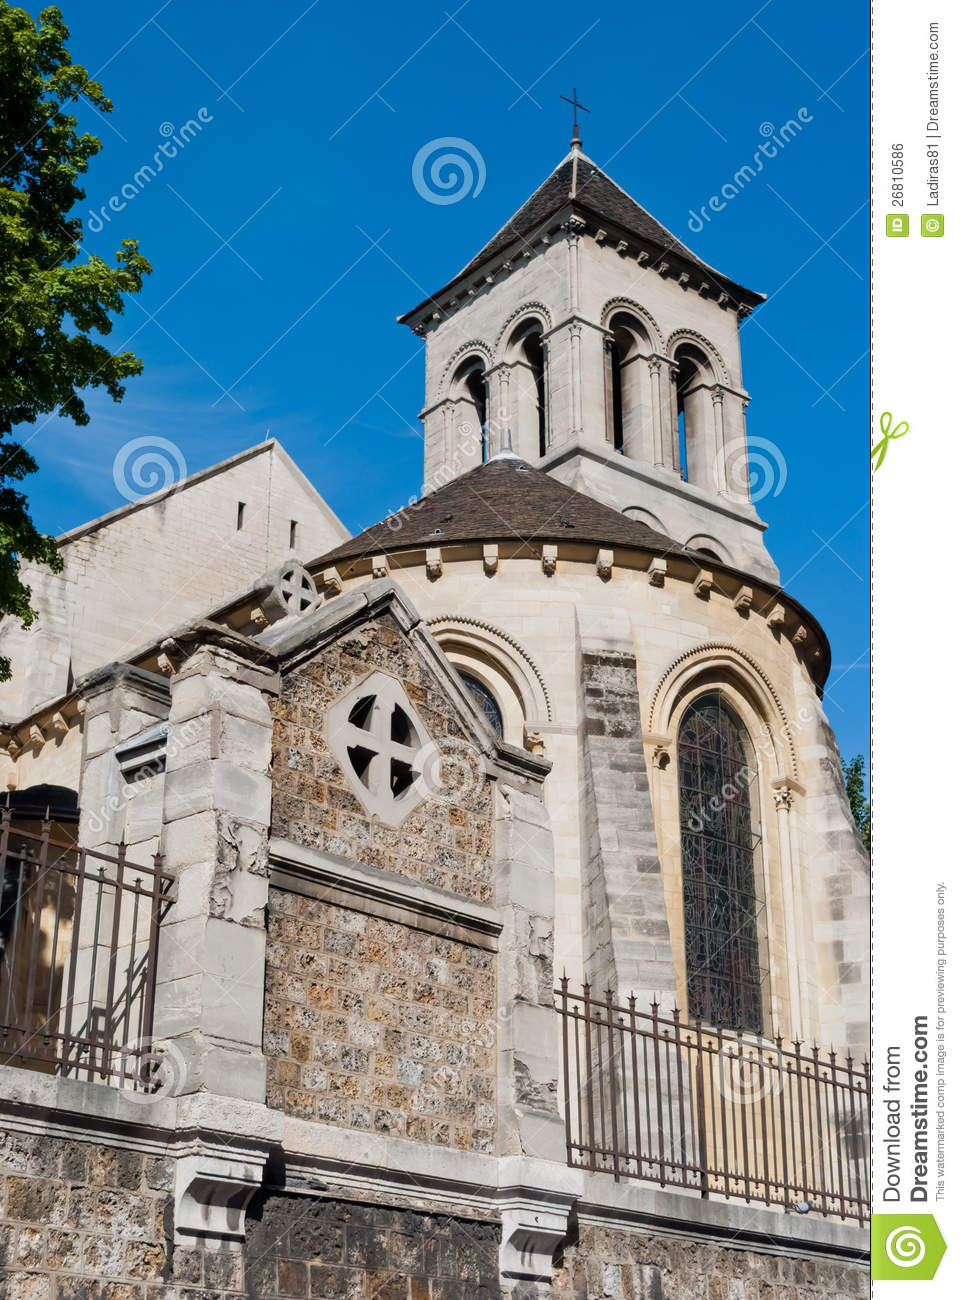 St pierre de montmartre old church paris royalty free stock image image 2 - St pierre de montmartre ...